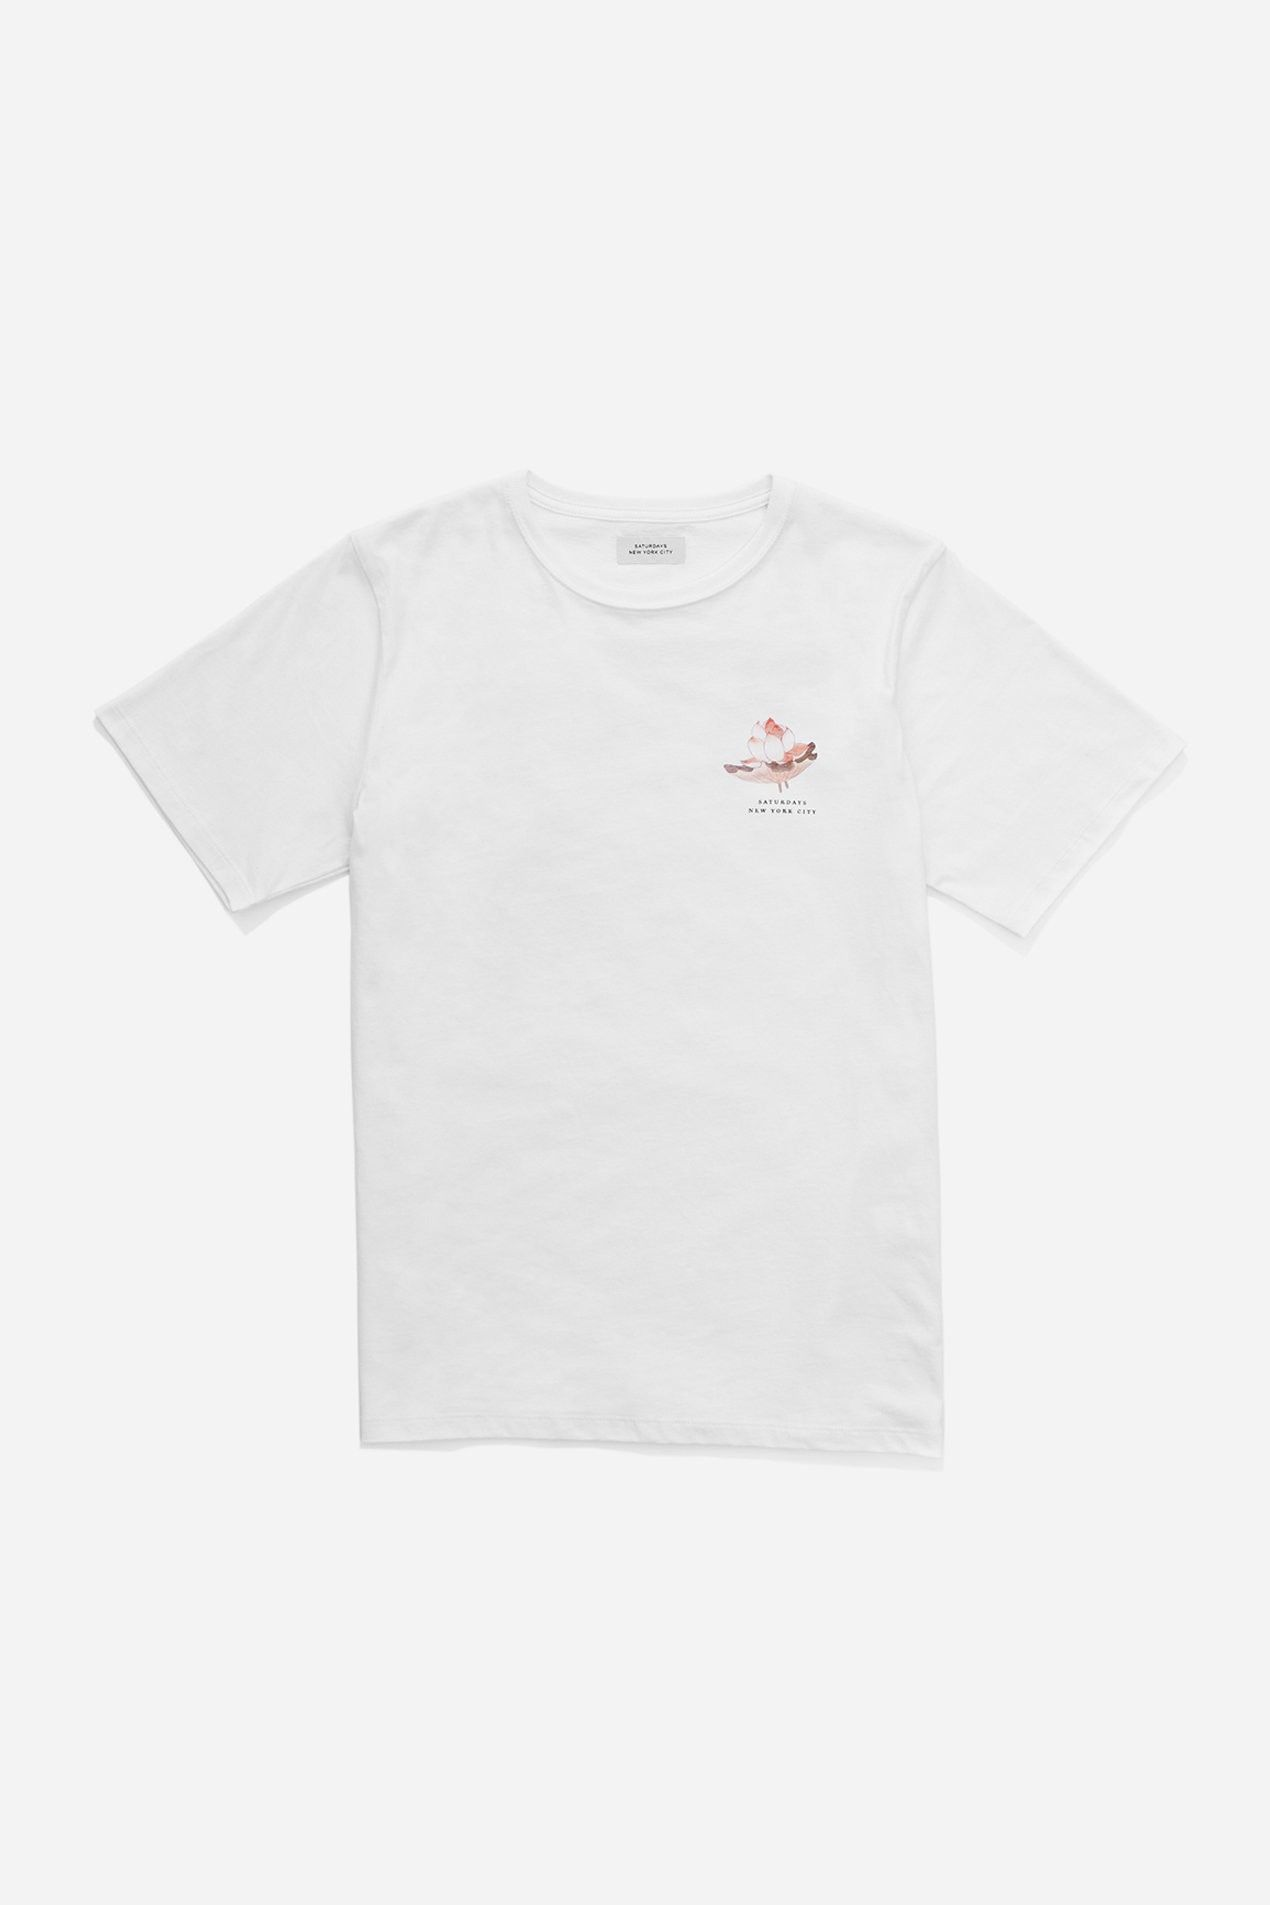 Saturdays surf nyc lotus flower tshirt white saturdayssurfnyc designed for fit comfort and style the lotus flower t shirt features an original saturdays nyc lotus flower print izmirmasajfo Images